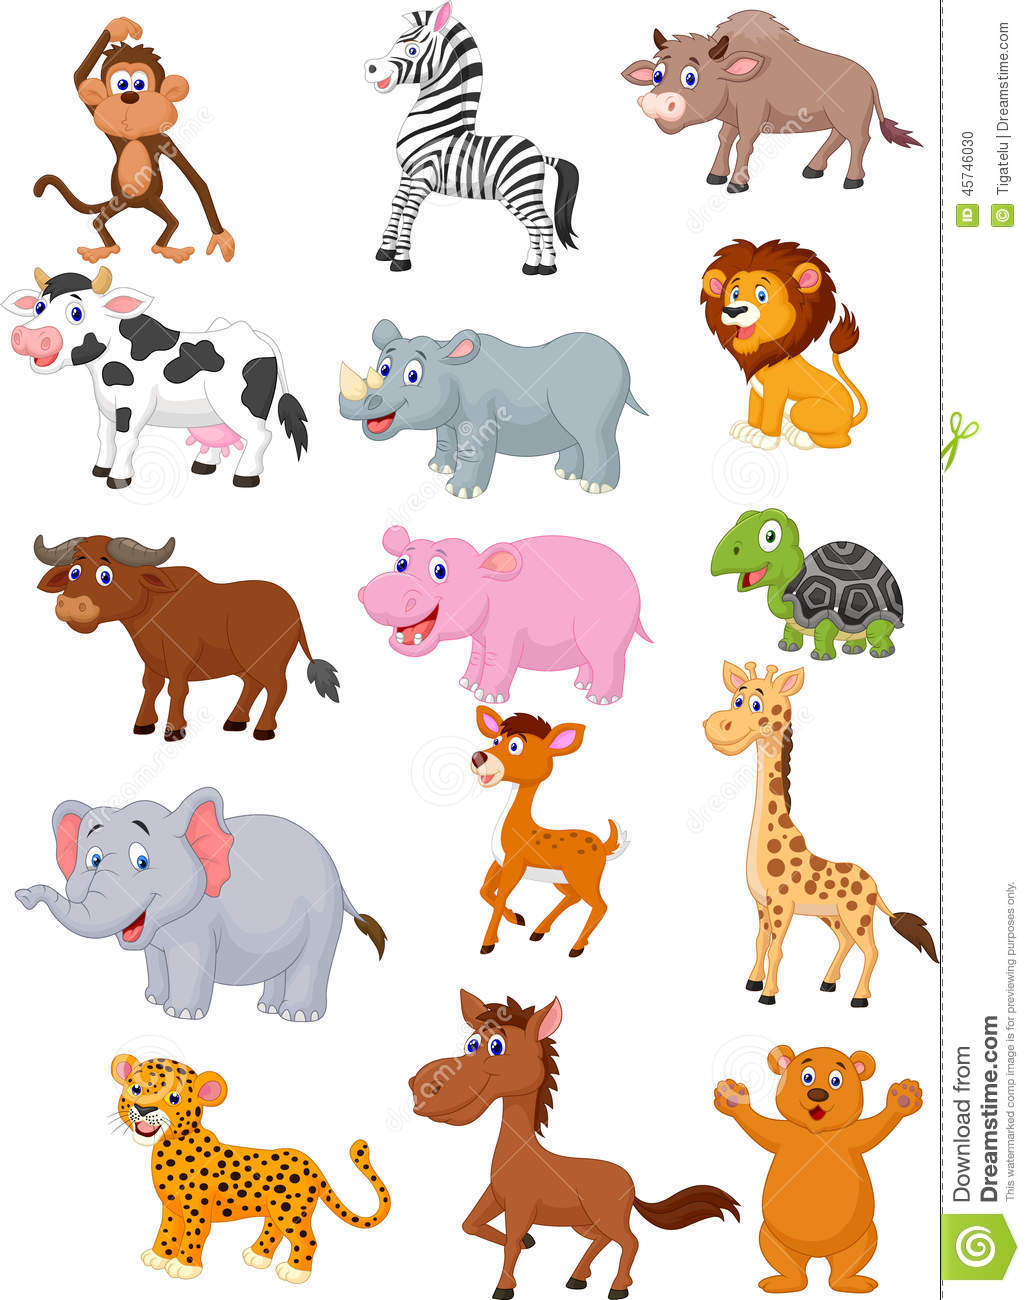 Wild Animal Cartoon Collection Stock Vector - Image: 45746030